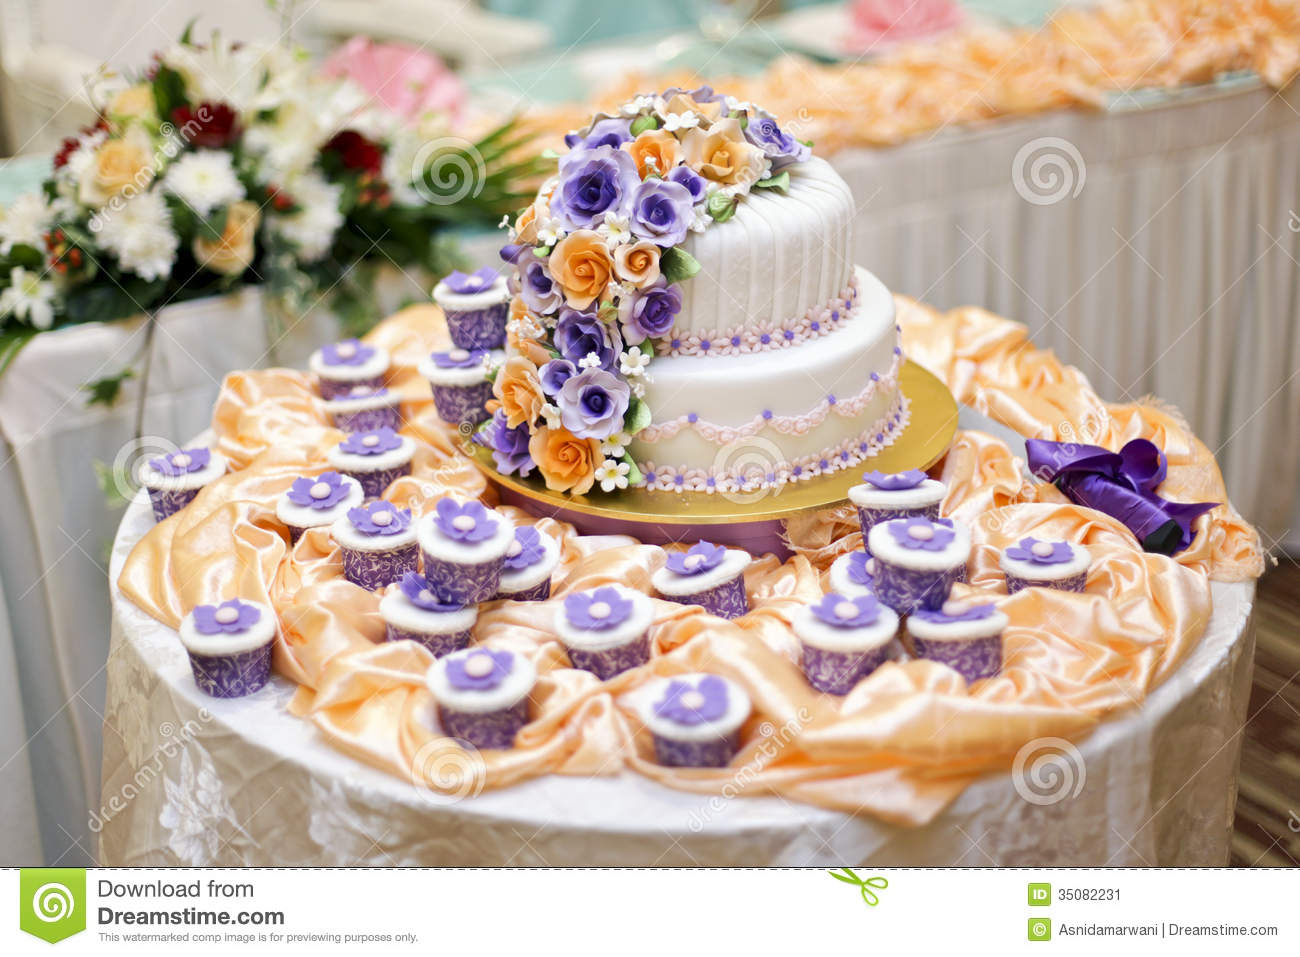 most beautiful wedding cakes of all time the beautiful wedding cake stock image image of marriage 17553